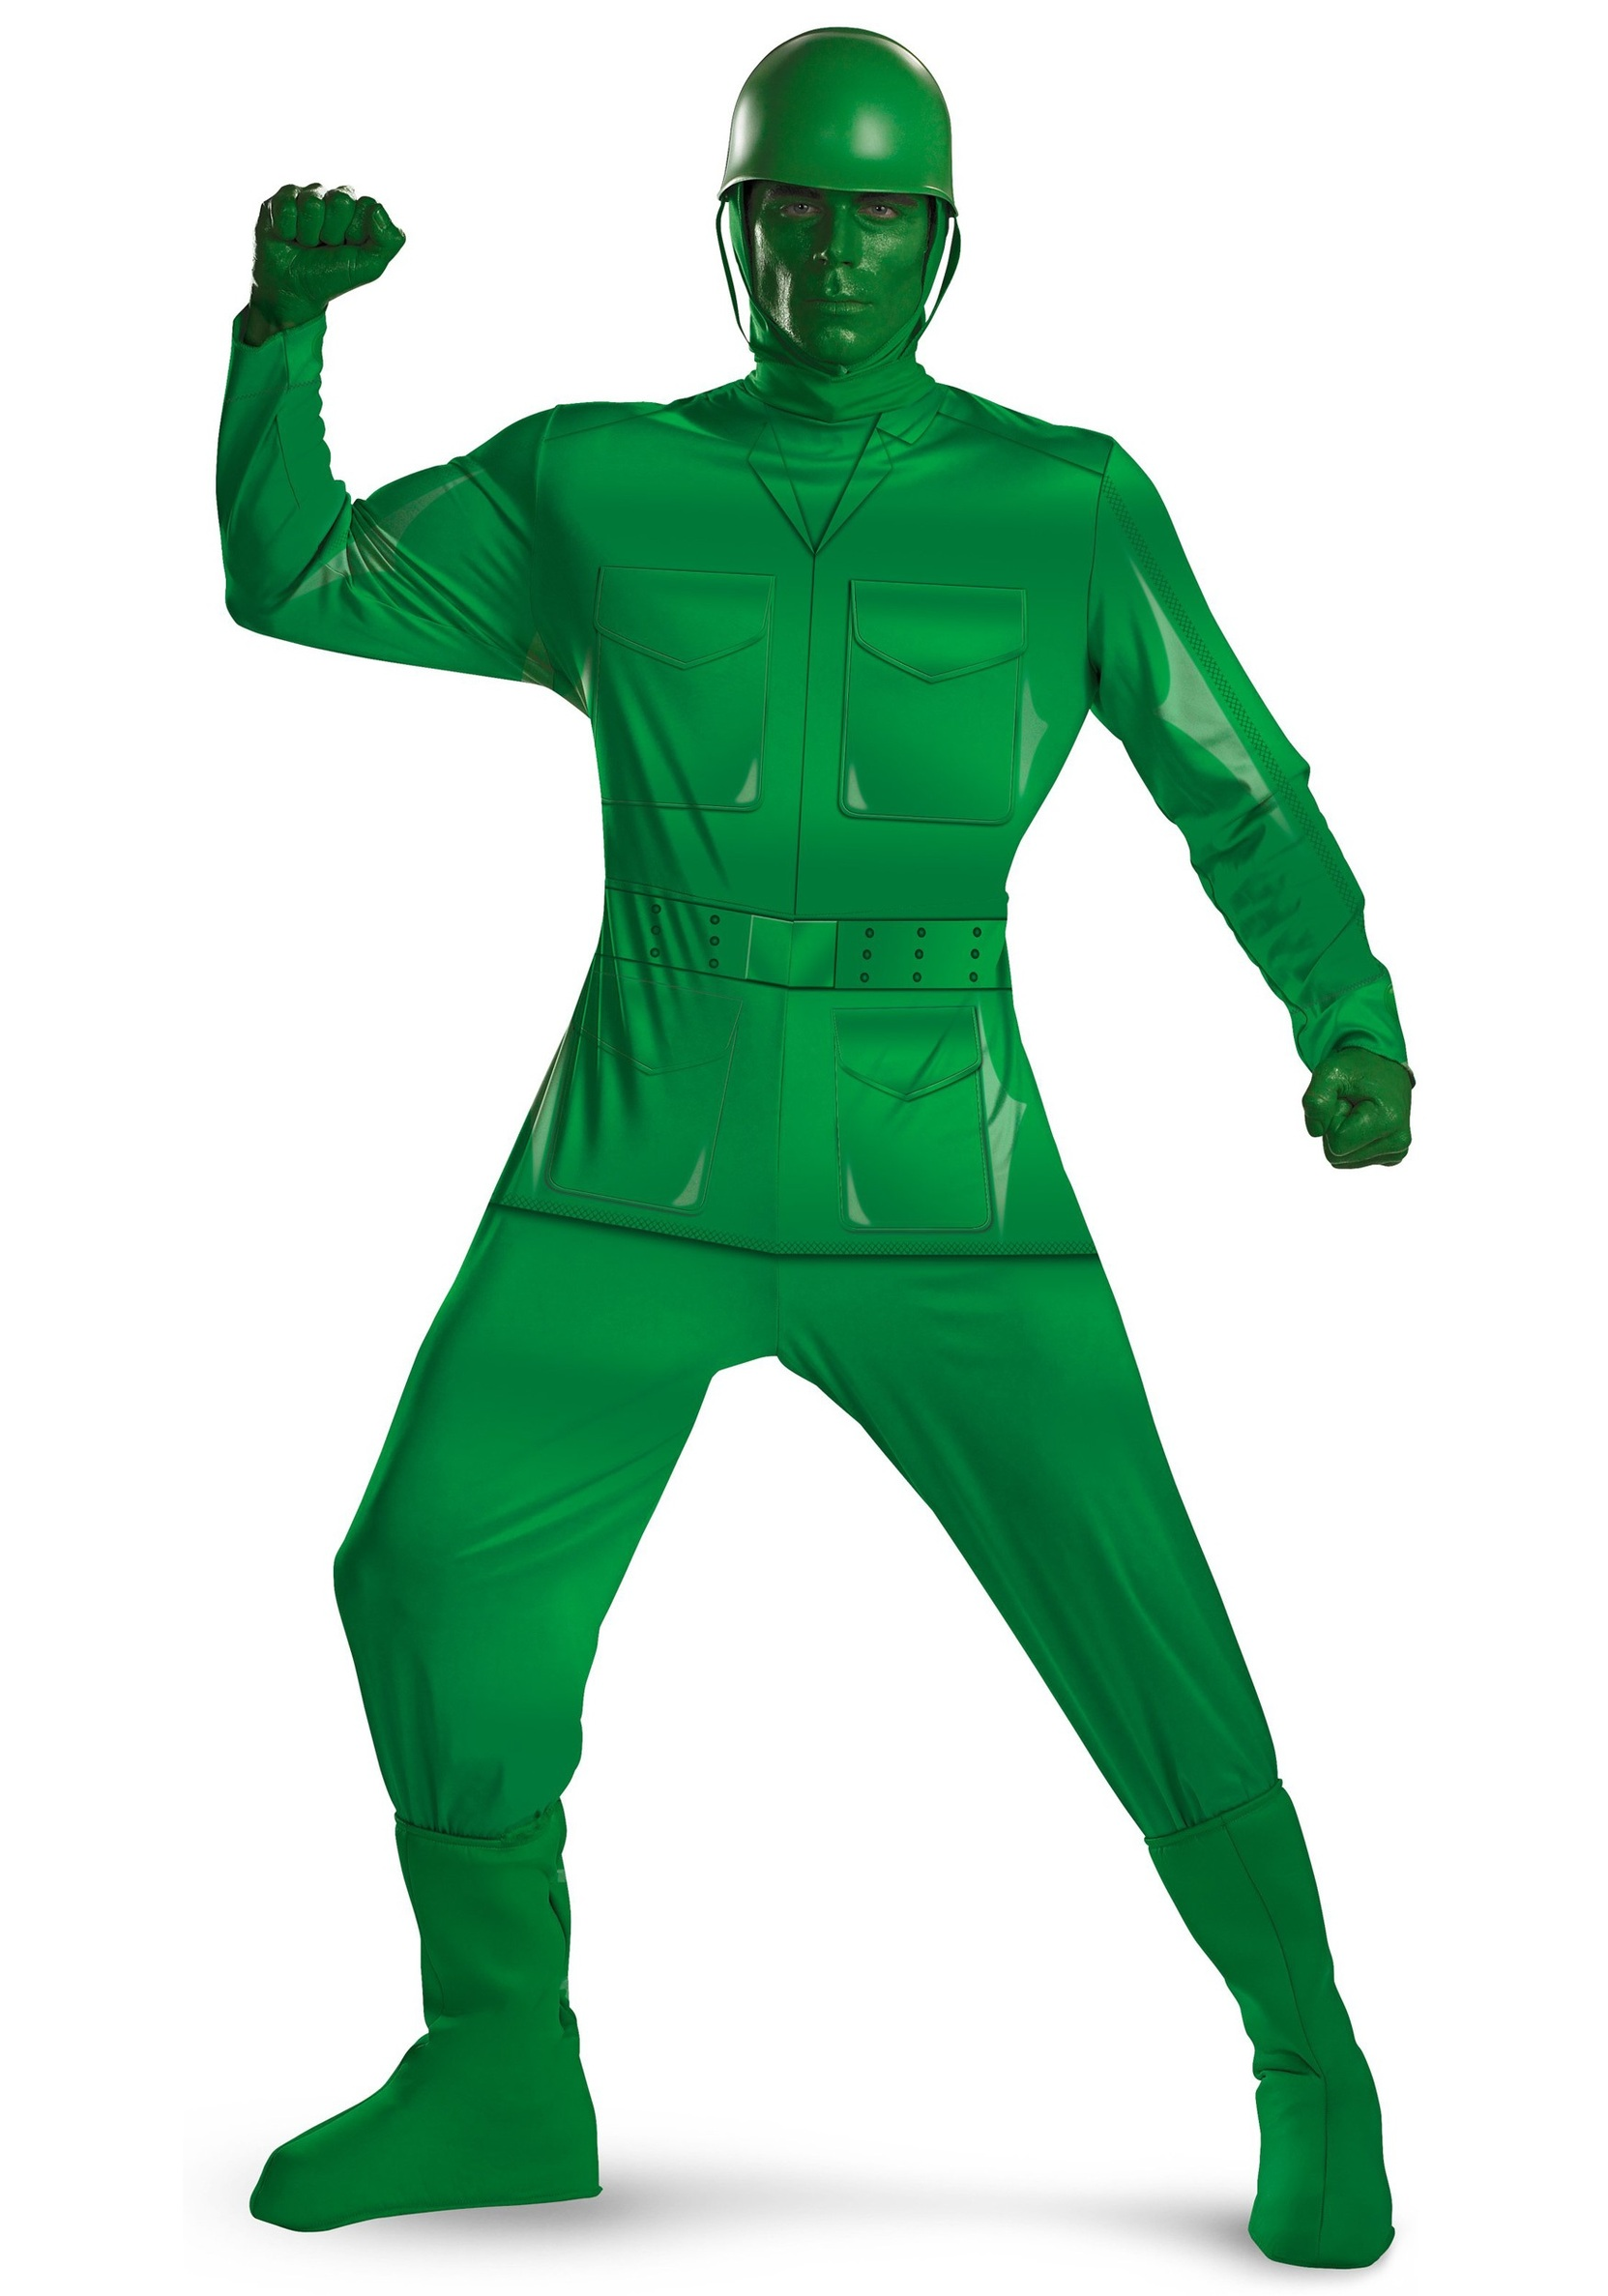 Disney green army man clipart image library Adult Toy Story Green Army Man Costume Clipart - Clip Art ... image library